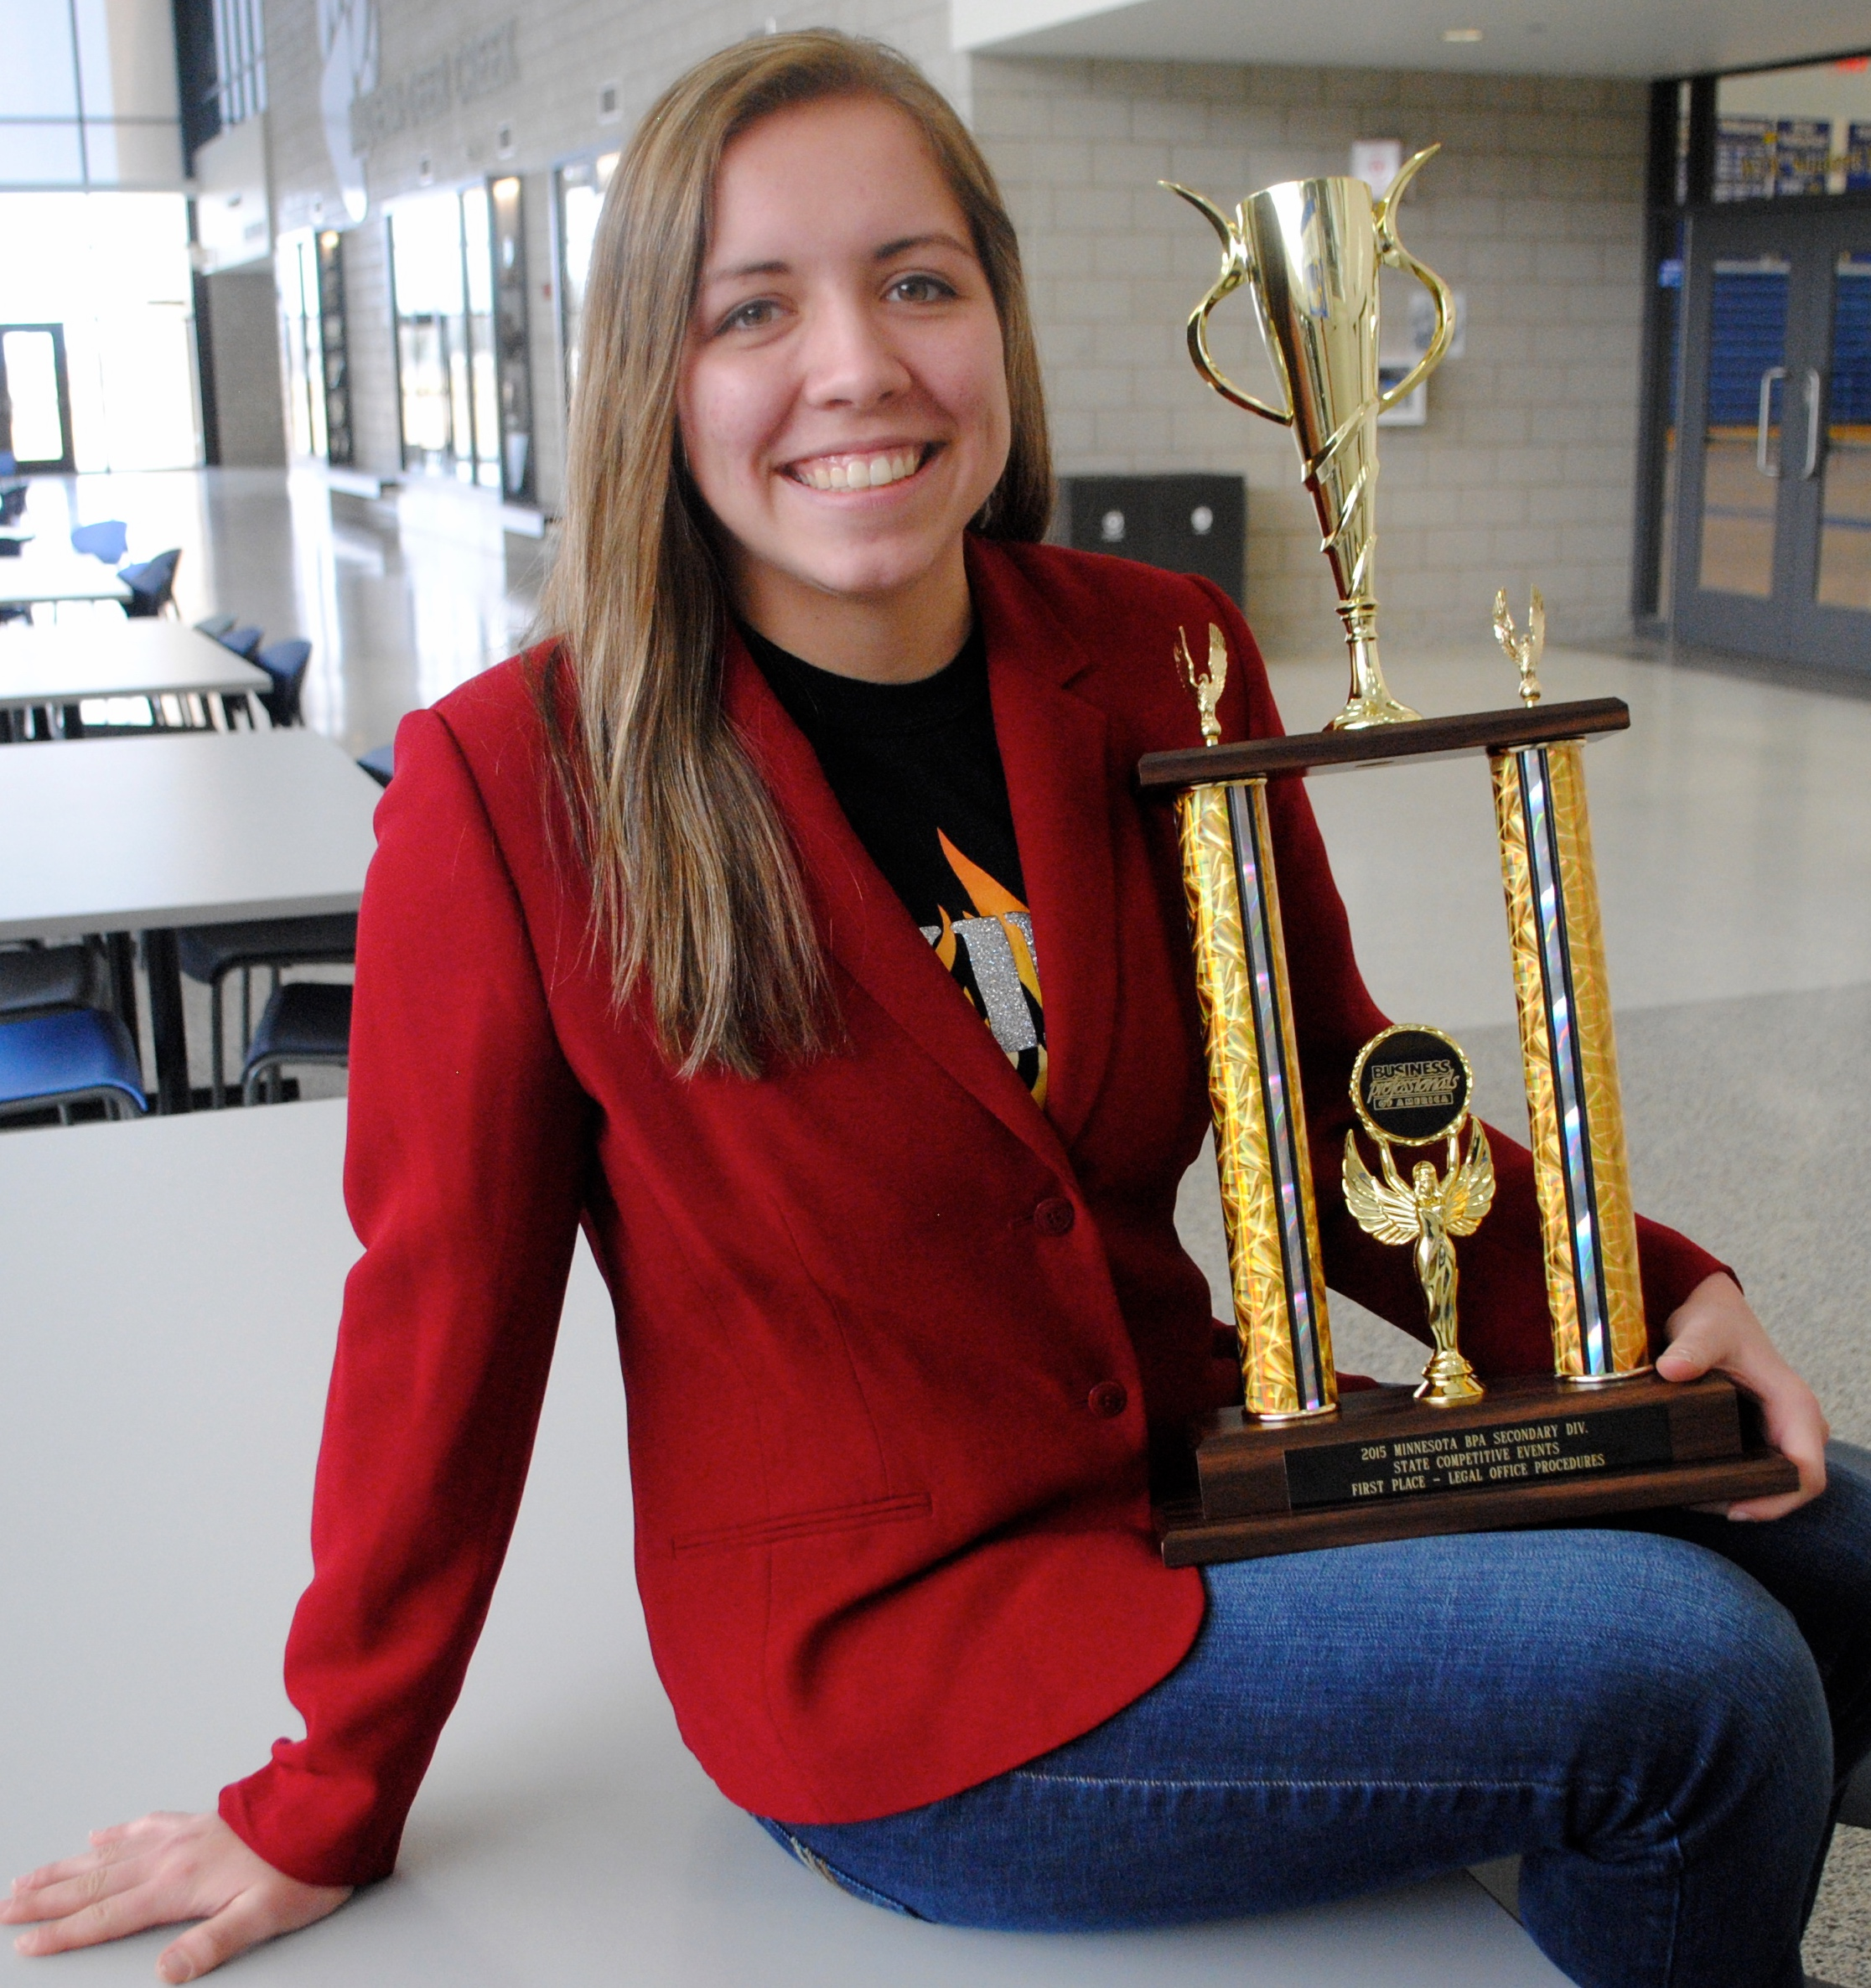 """Maddy Hinojos, a senior, qualified for the National Leadership Conference May 6-9 in Anaheim, Calif. She is shown here with her State BPA trophy, where she earned first place in the """"Legal Office Procedures"""" category."""